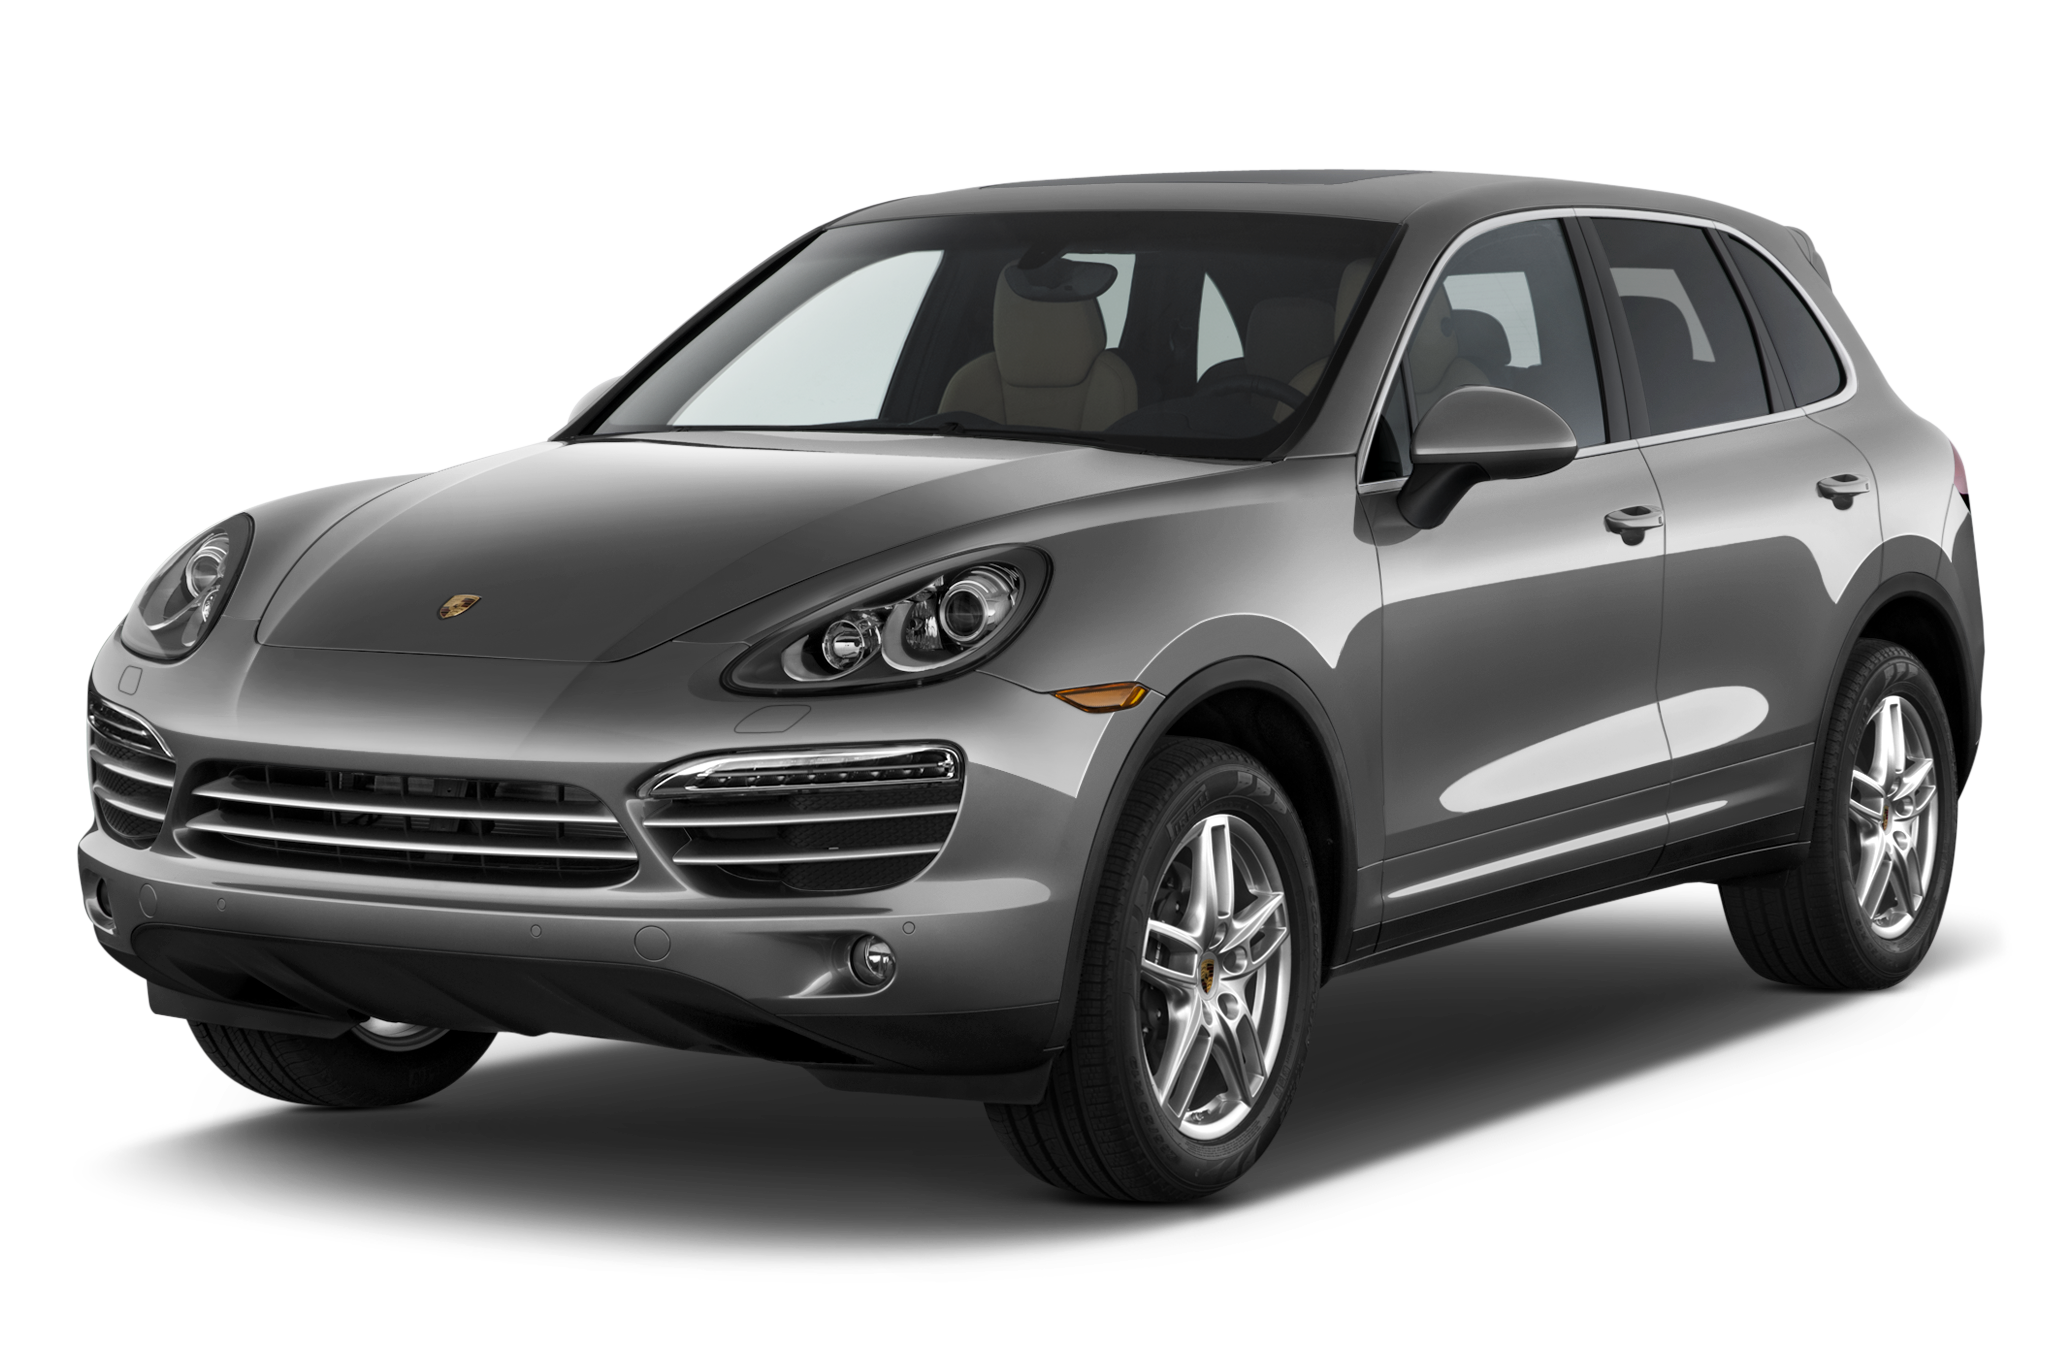 Porsche Cayenne 4x4 <br> (Group T)